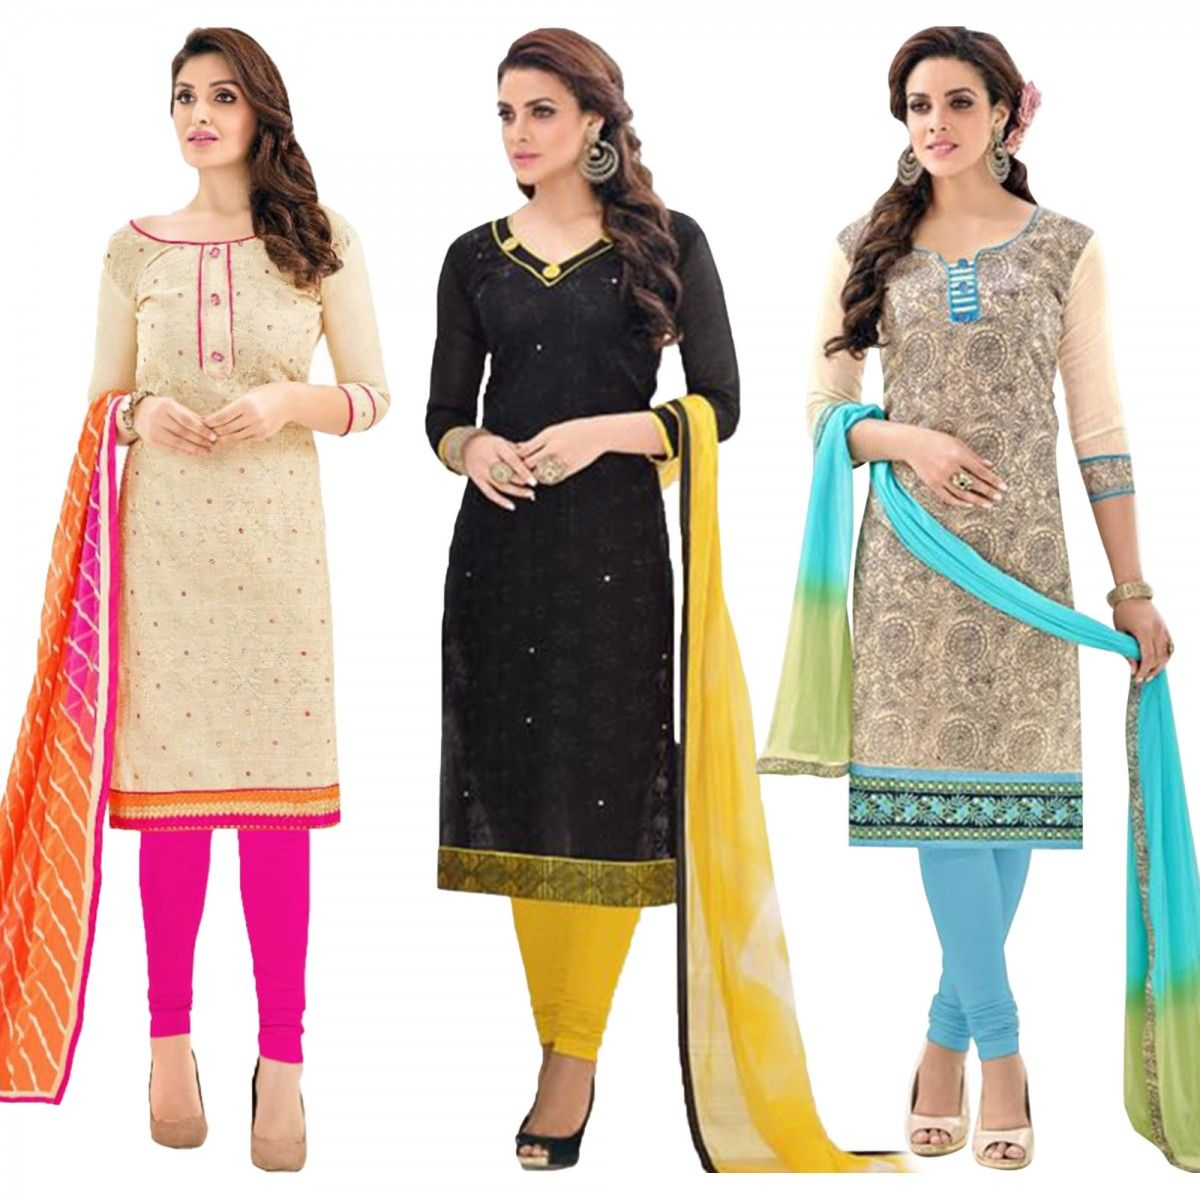 55867bf5f0 Buy Pack of 3 Chanderi Dress Material at Rs. 1999- Get latest combo packs